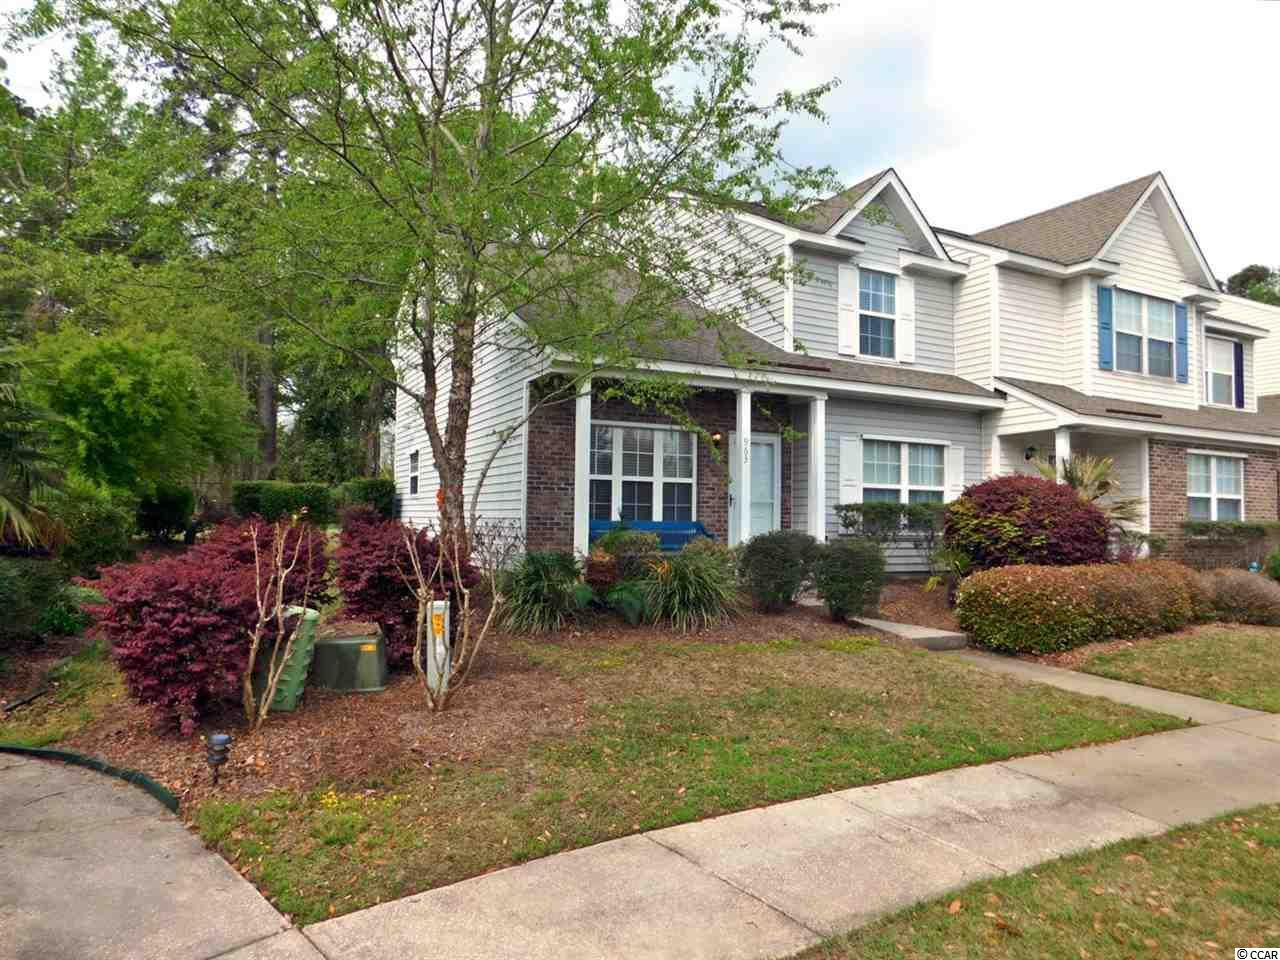 Townhouse MLS:1807734 PARKVIEW SUBDIVISION - 17TH AVE.  963 Pendant Circle Myrtle Beach SC